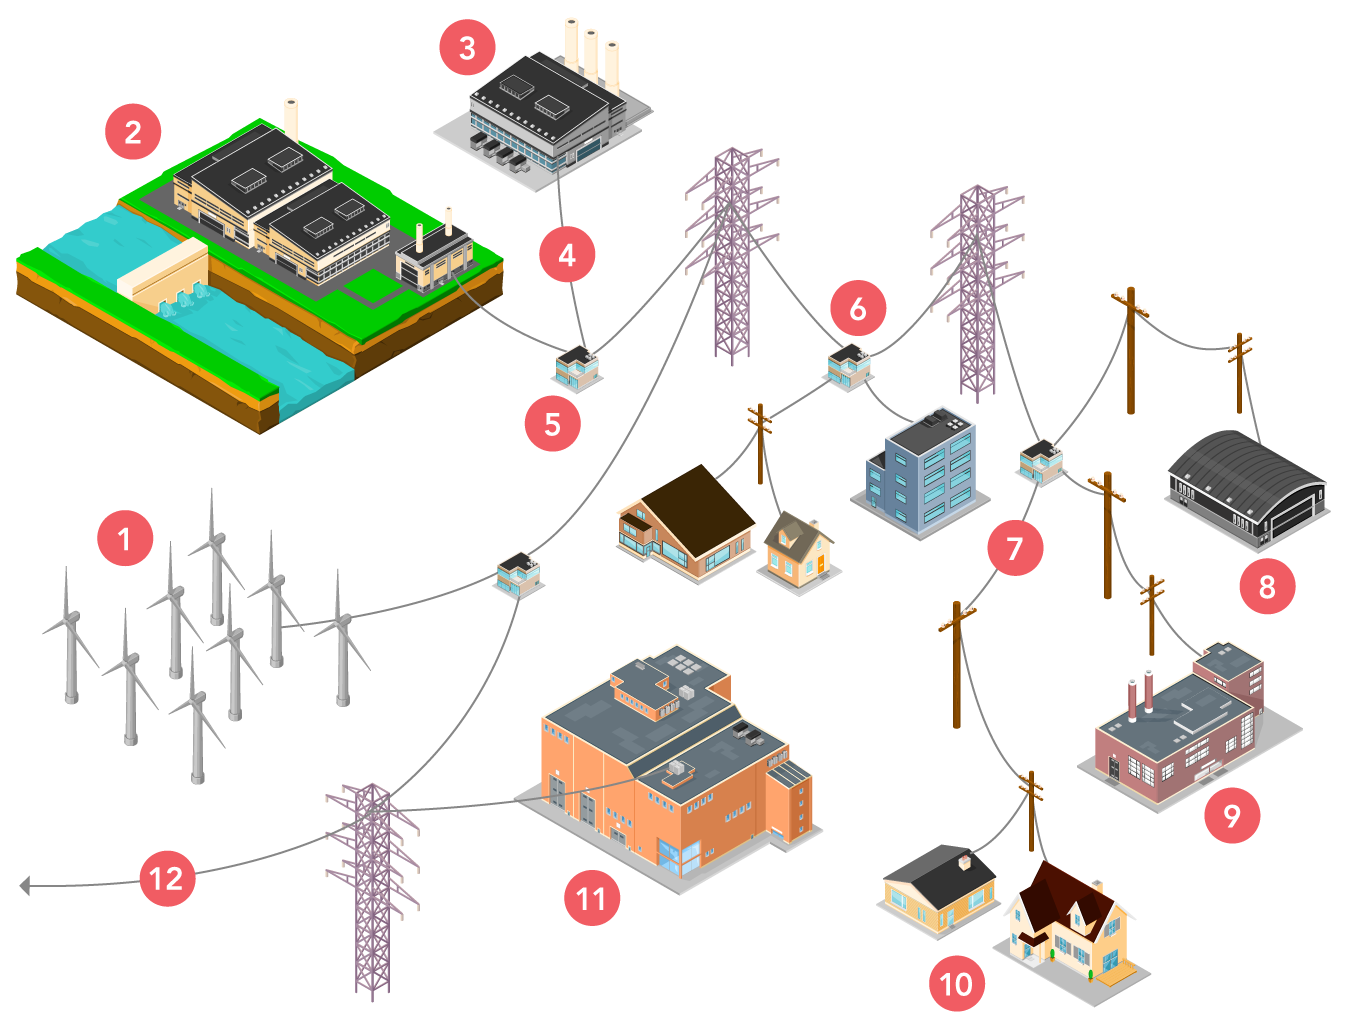 Alberta's Electrical Transmission System